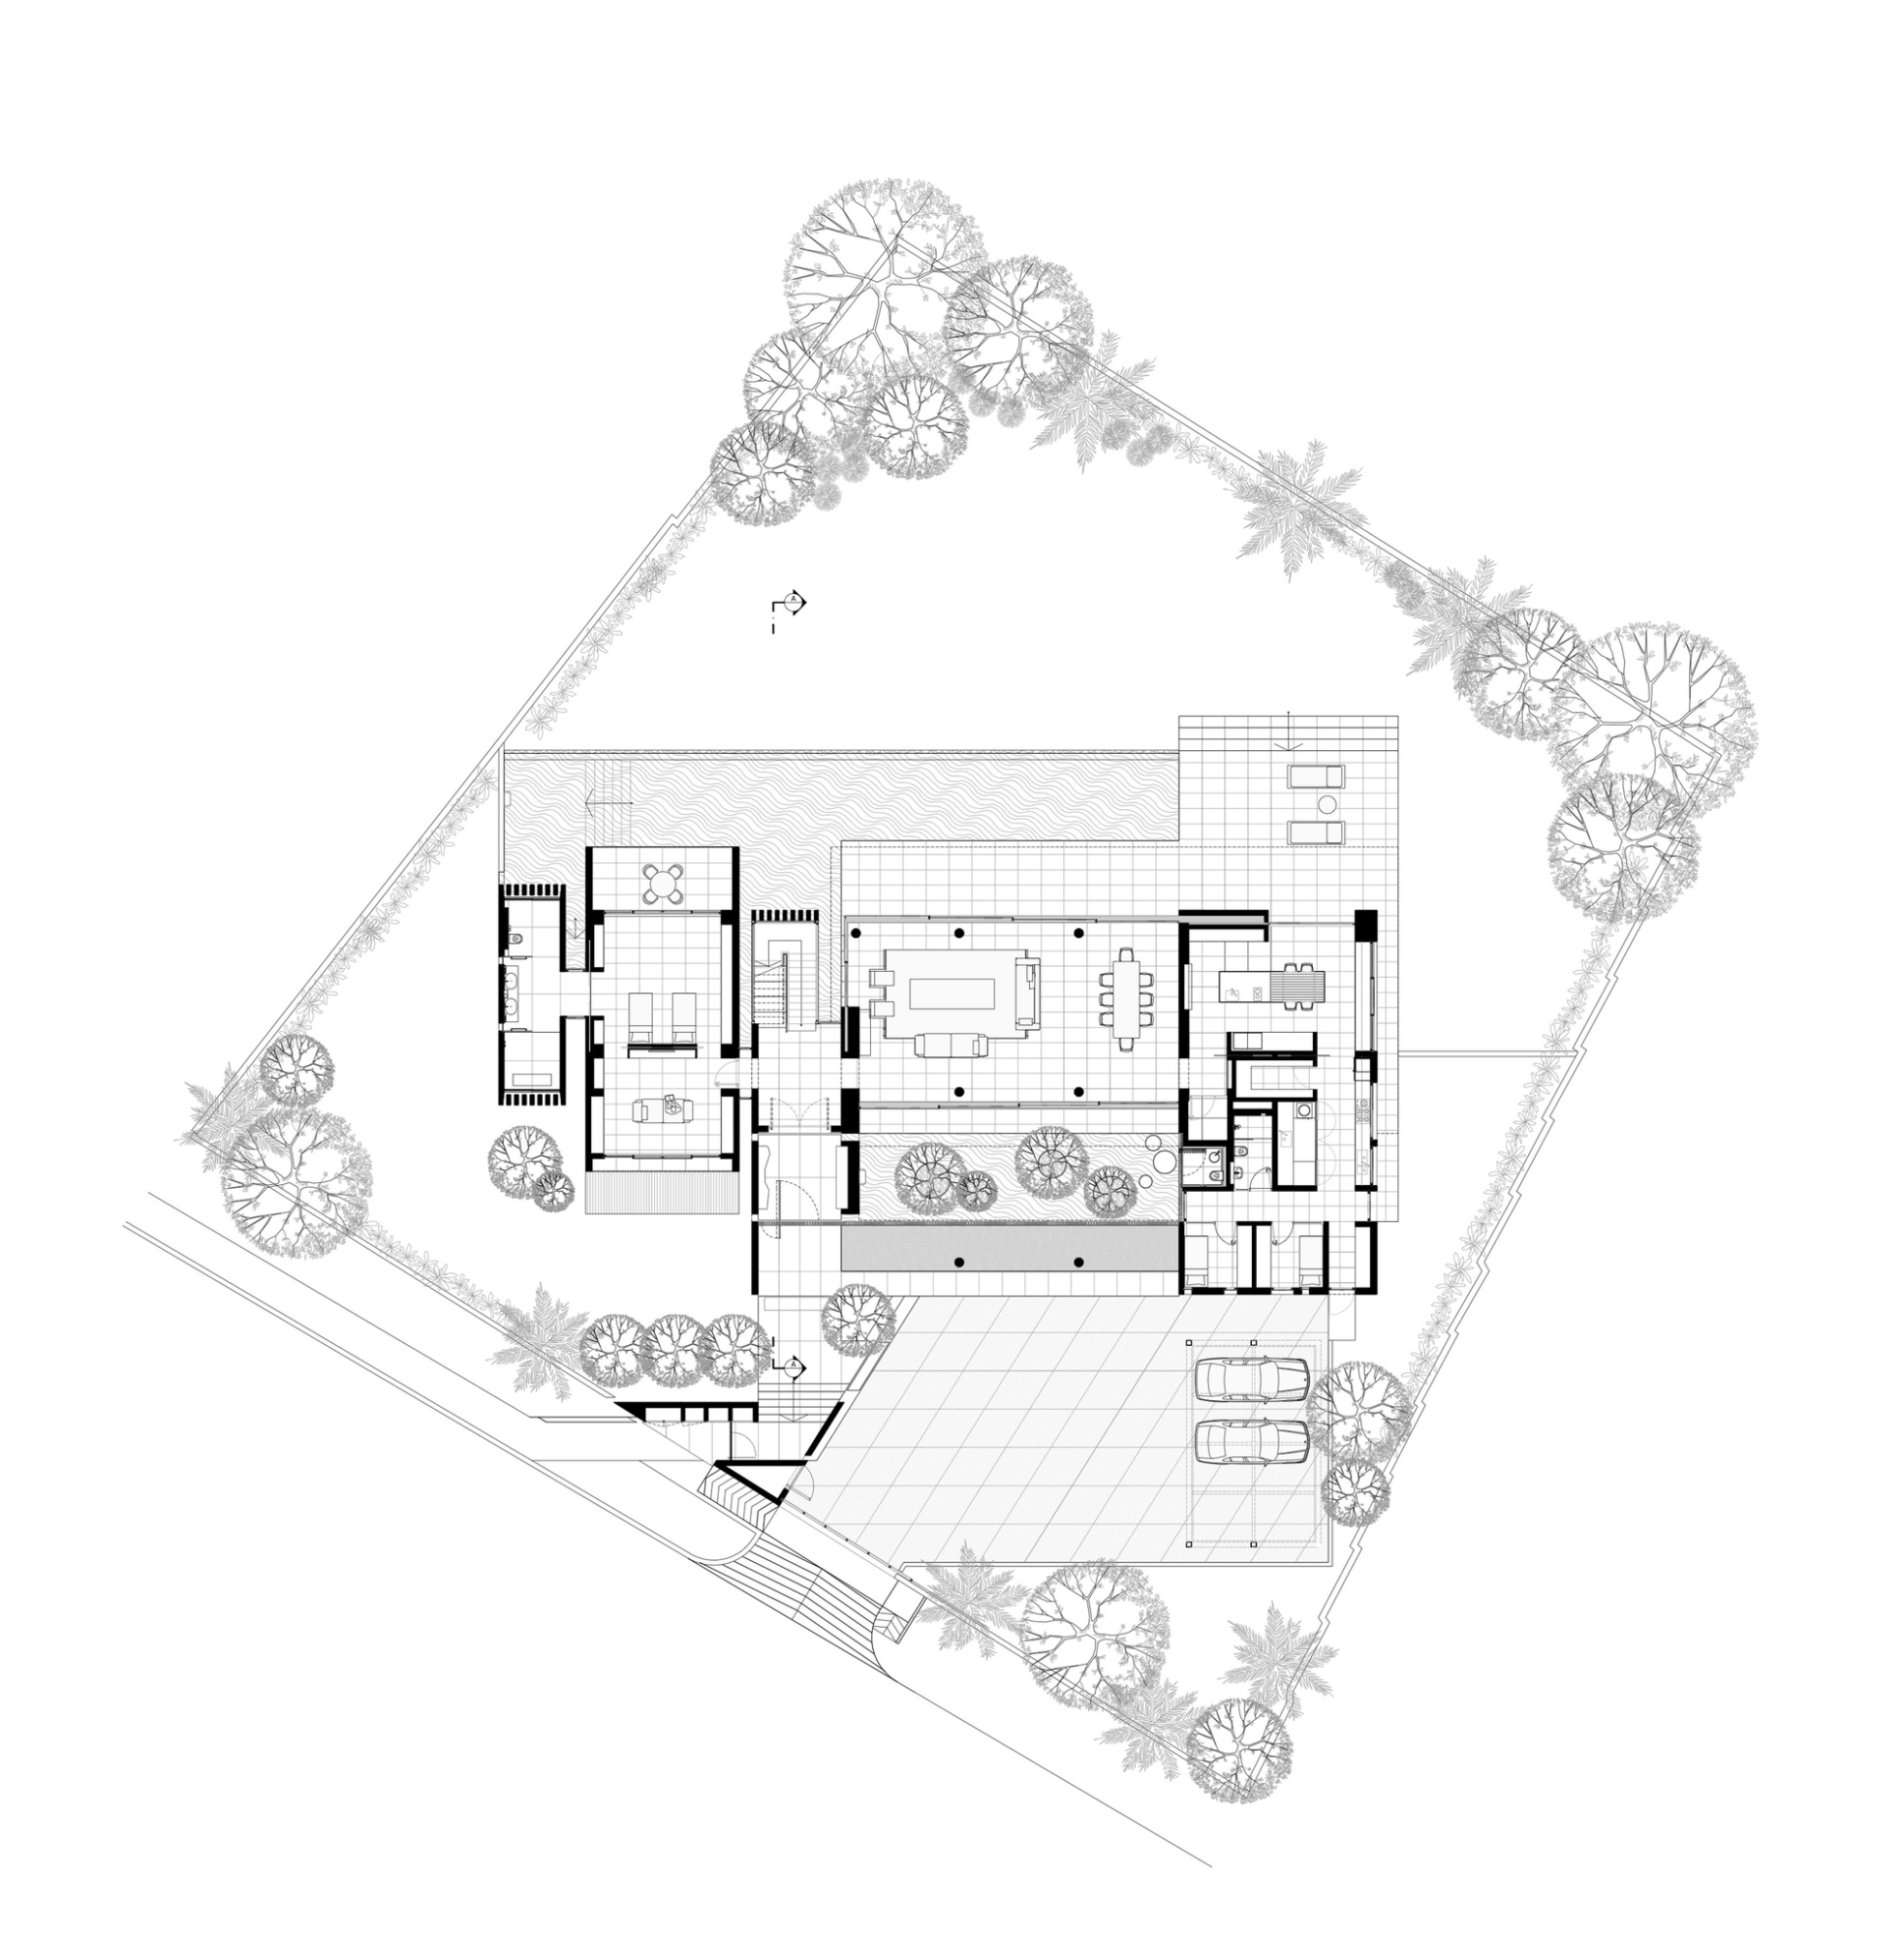 Dream house interior design drawing for My dream house drawing